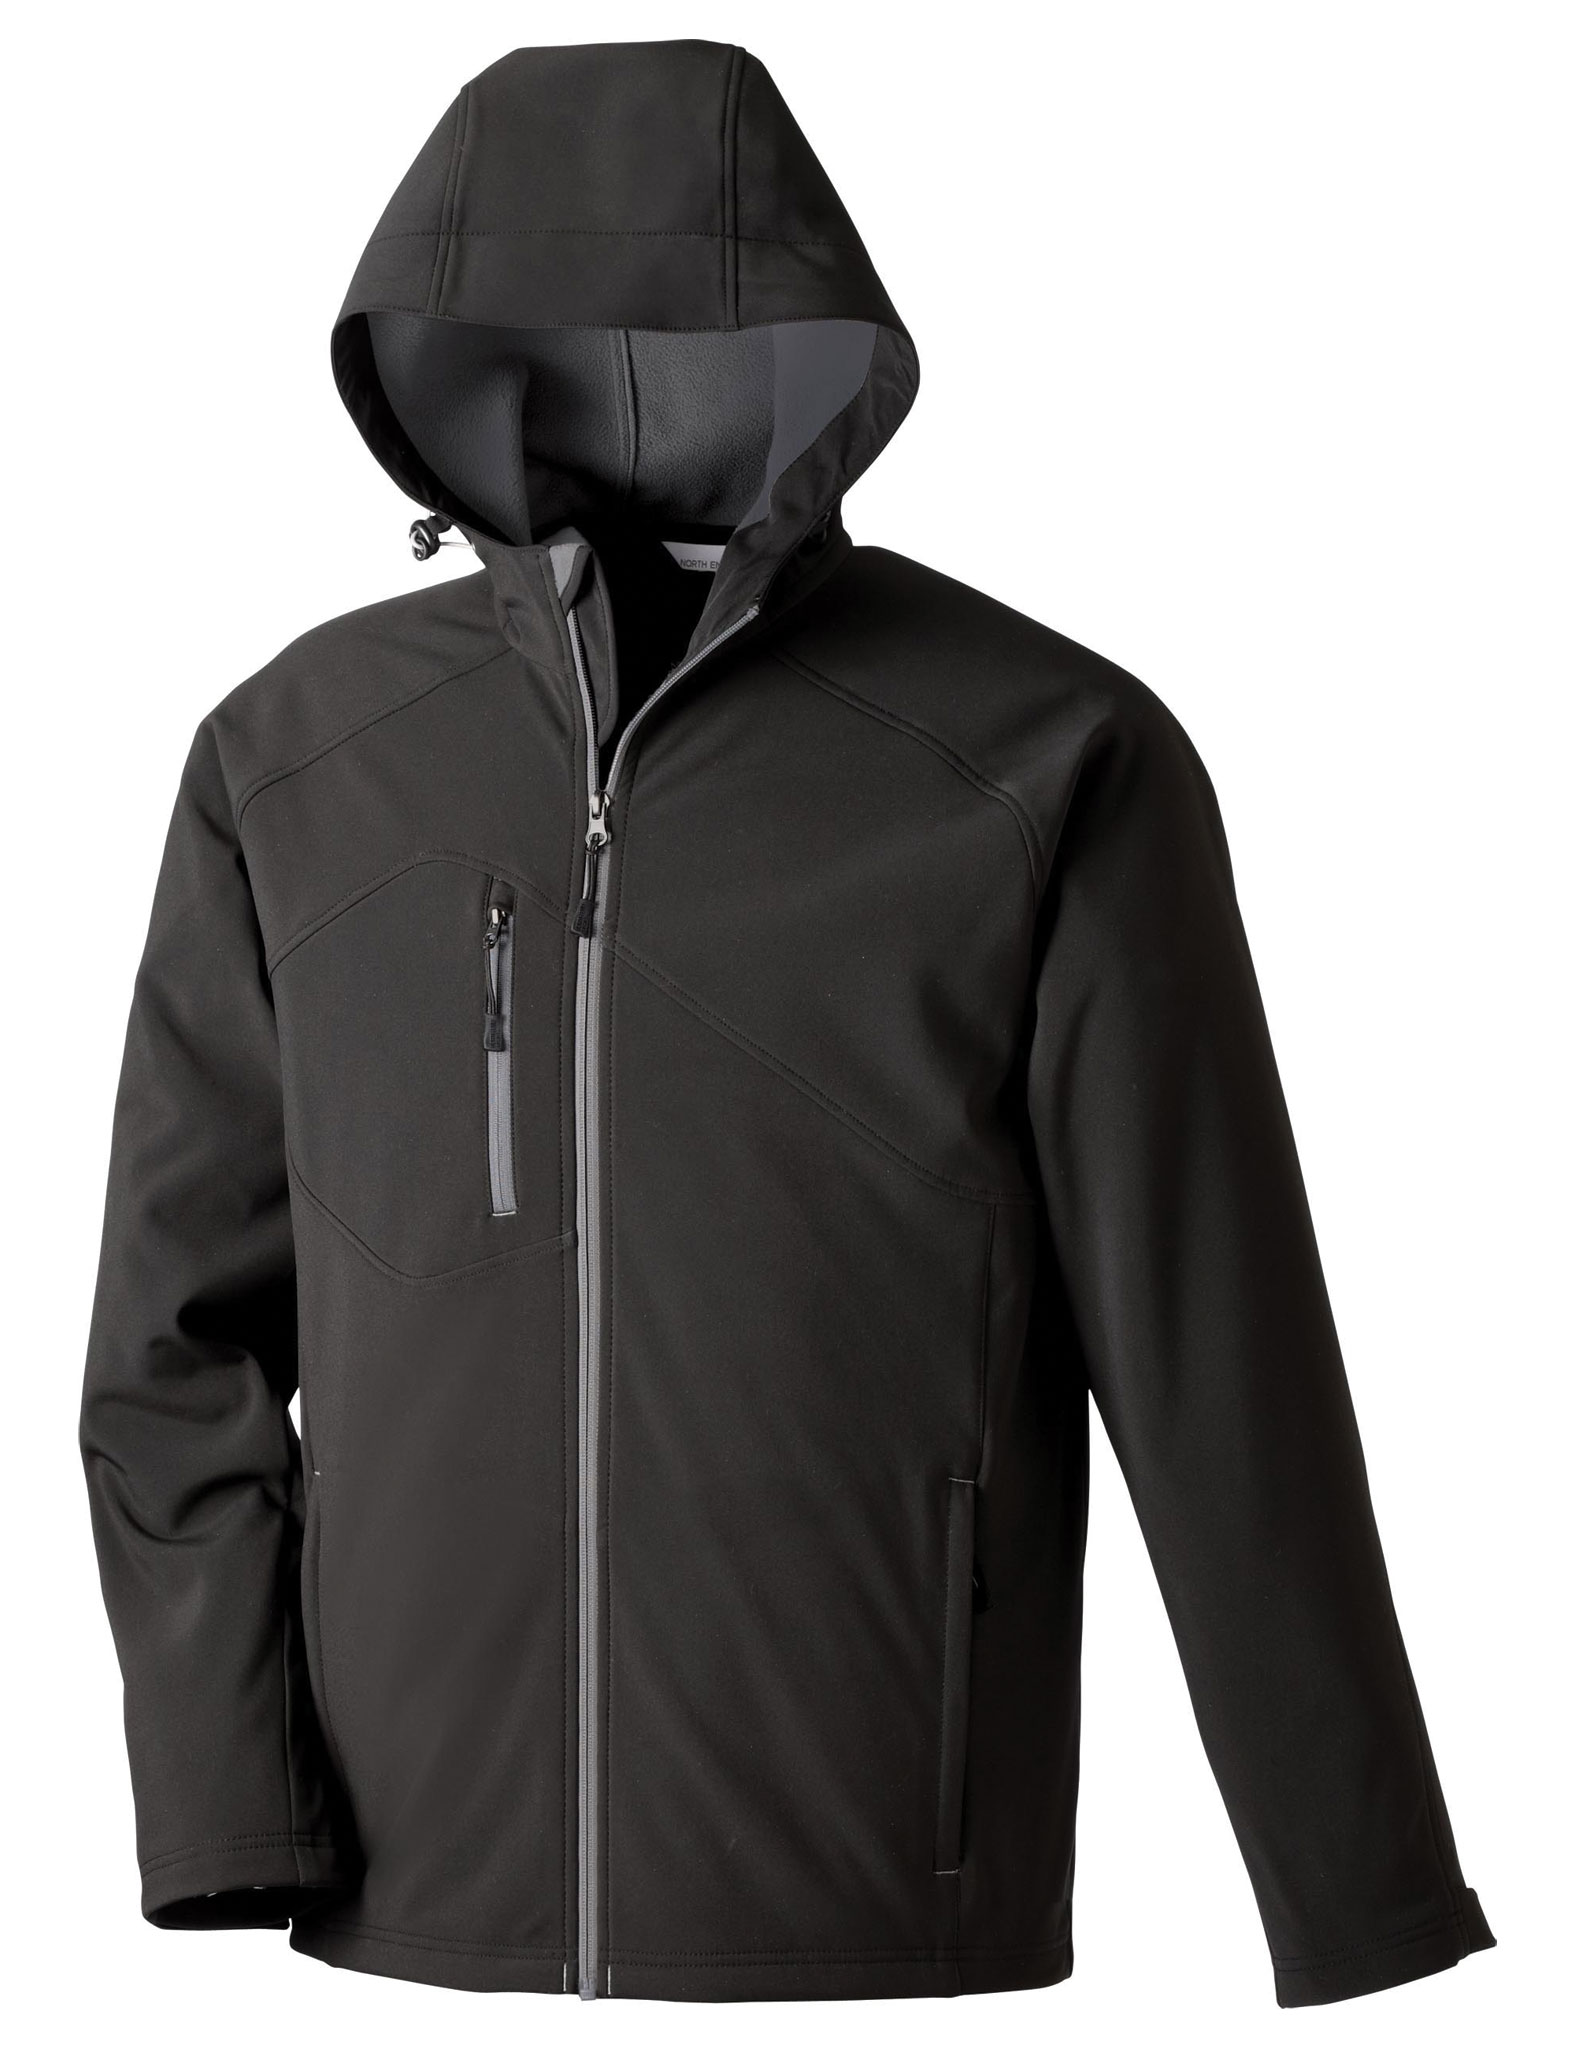 Mens Soft Shell Jacket With Hood